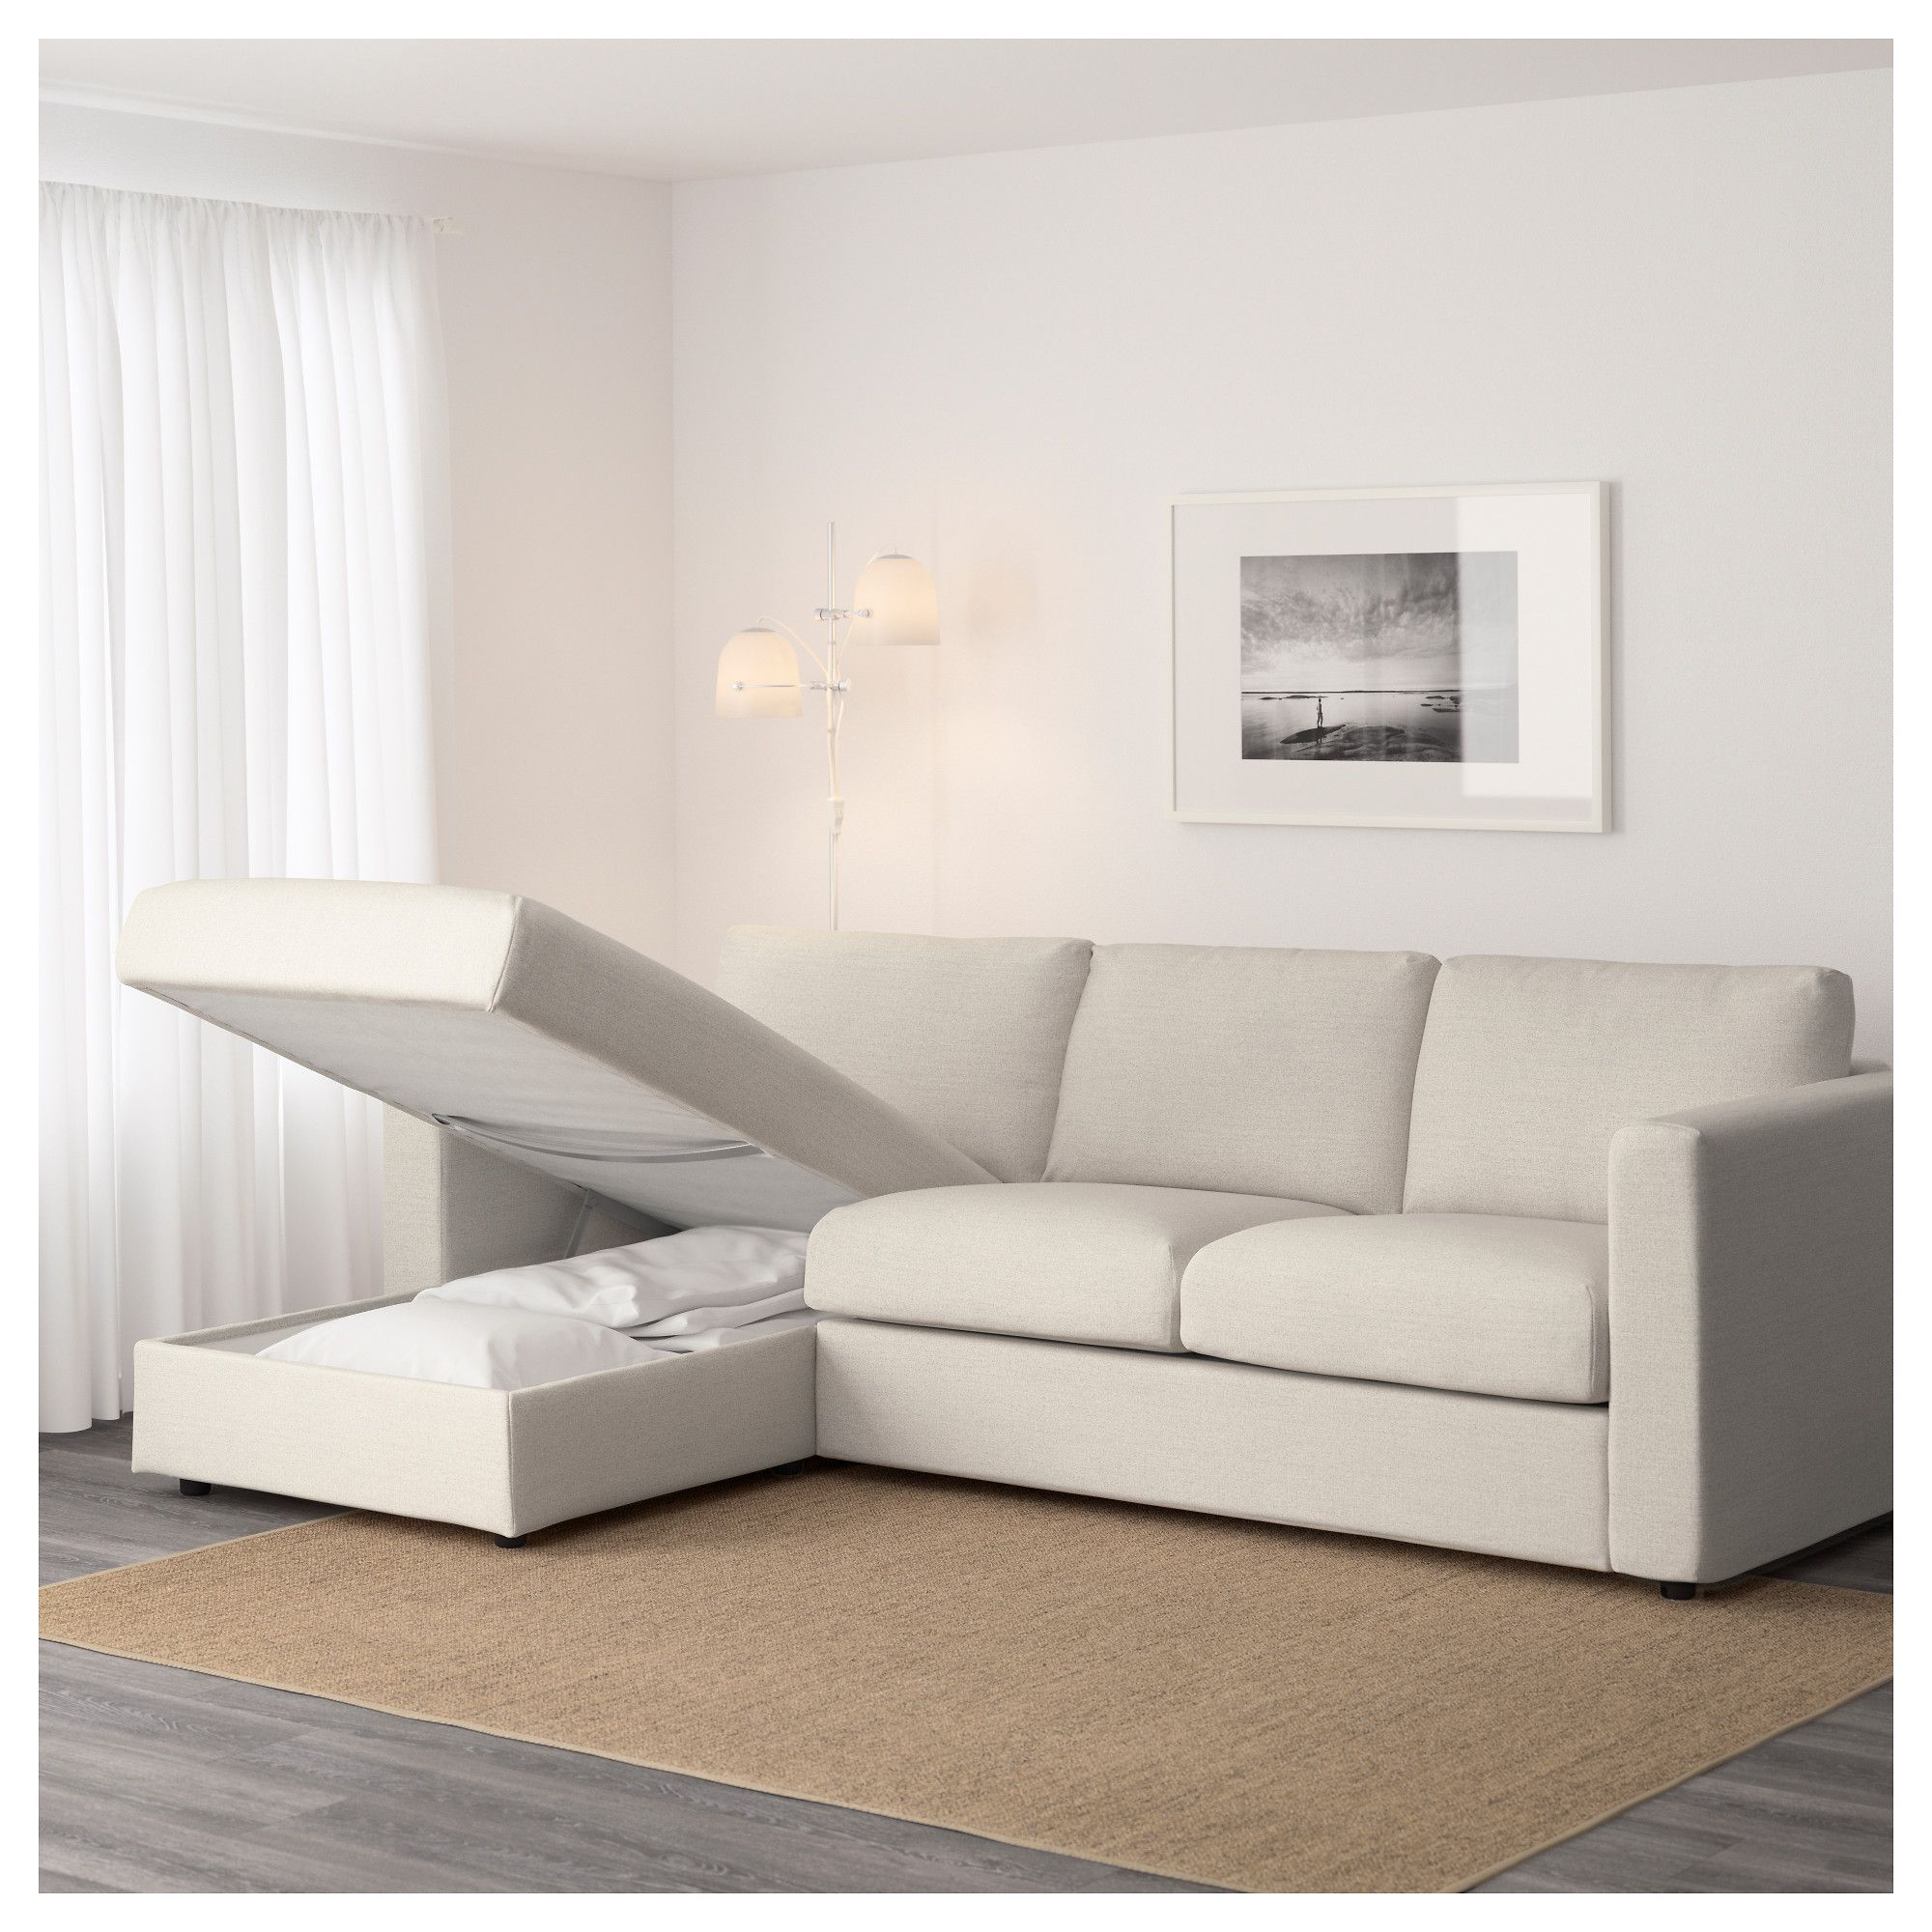 Chaise Ikea Salon Ikea Vimle Sofa With Chaise Gunnared Beige Hipster Home Decor